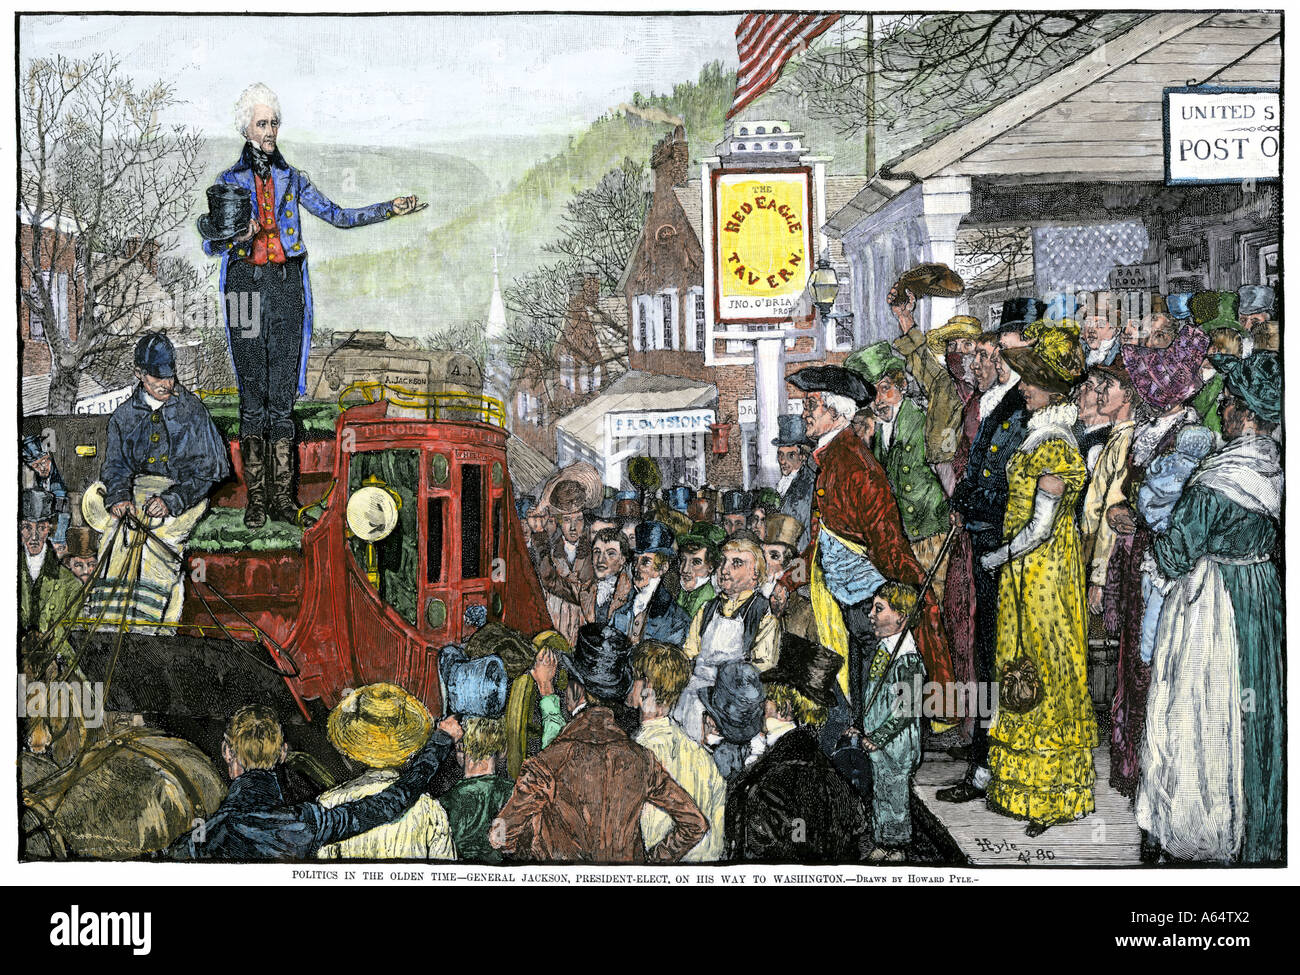 President-Elect Andrew Jackson making a speech on his way to Washington DC. Hand-colored woodcut of a Howard Pyle illustration - Stock Image